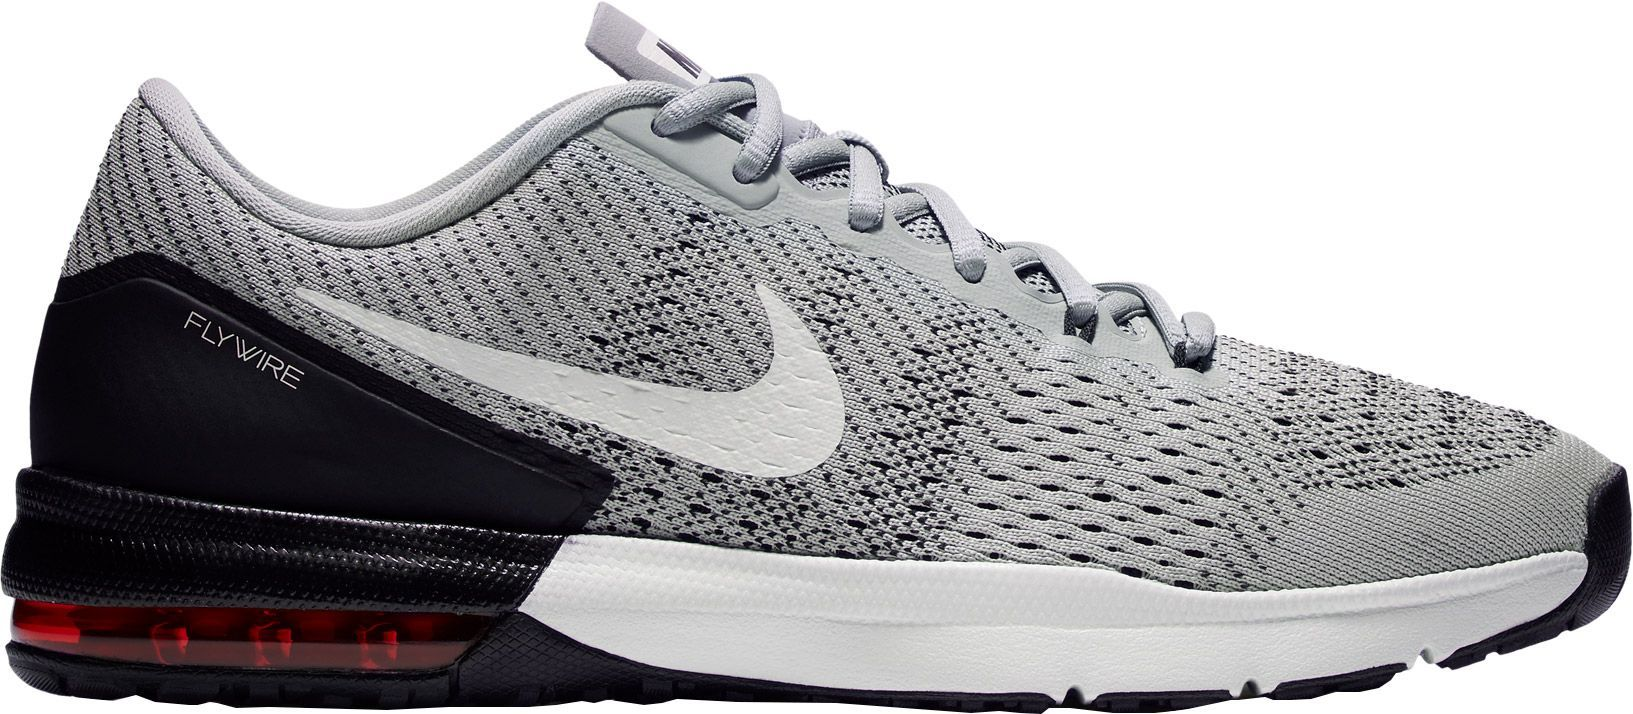 Nike Men's Air Max Typha Training Shoes, Size: 8.0, Gray